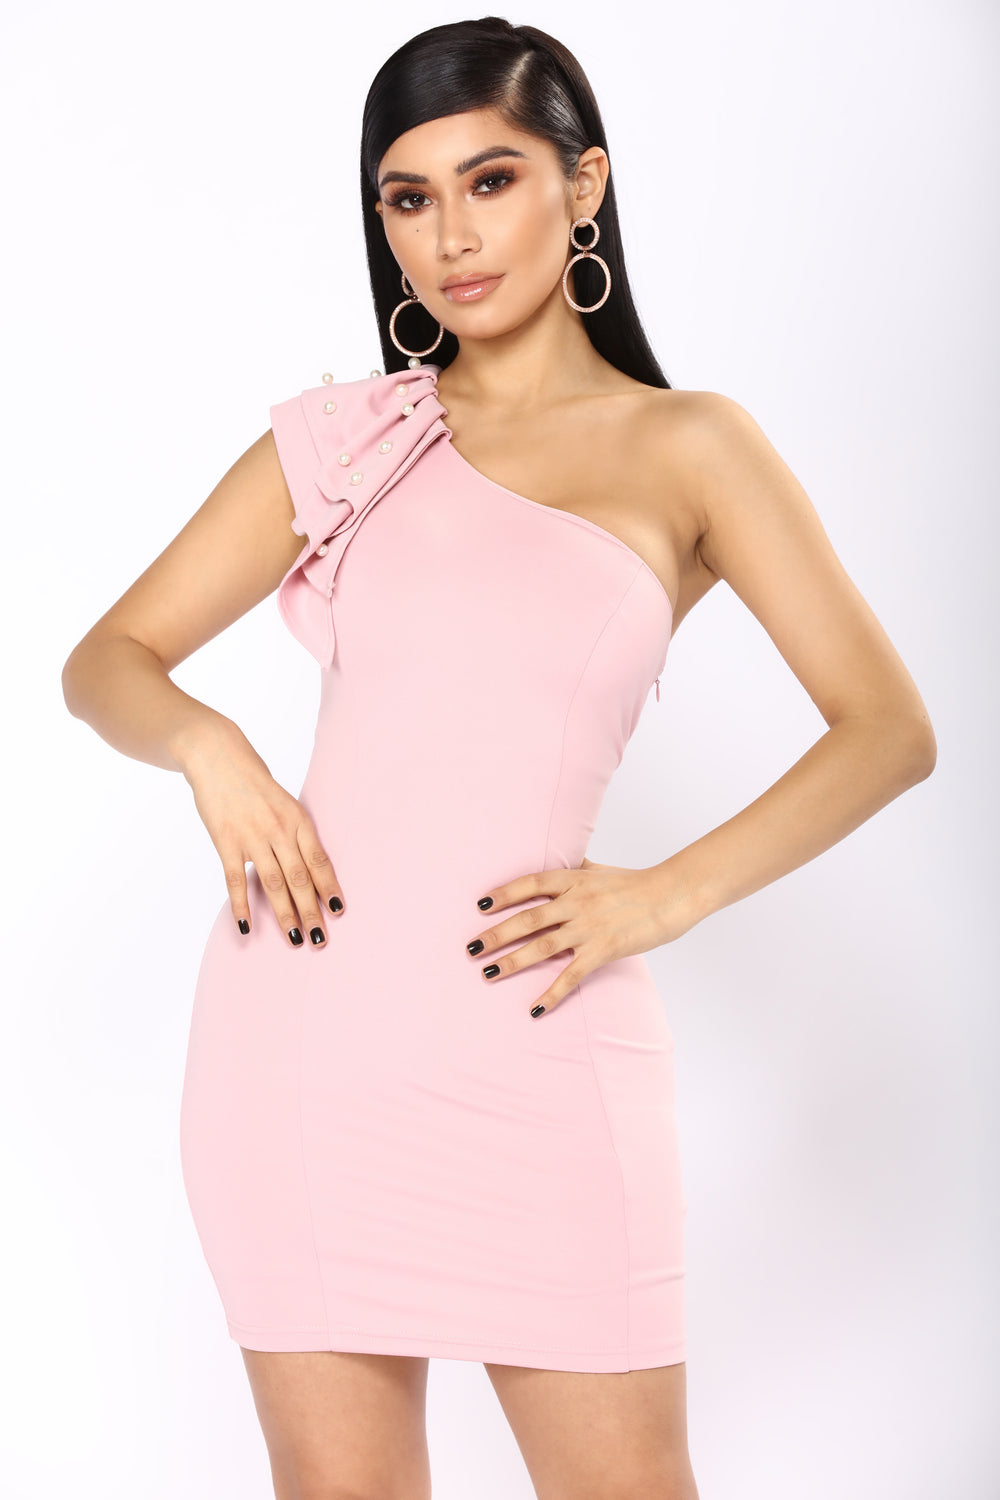 Perla One Shoulder Dress - Pink